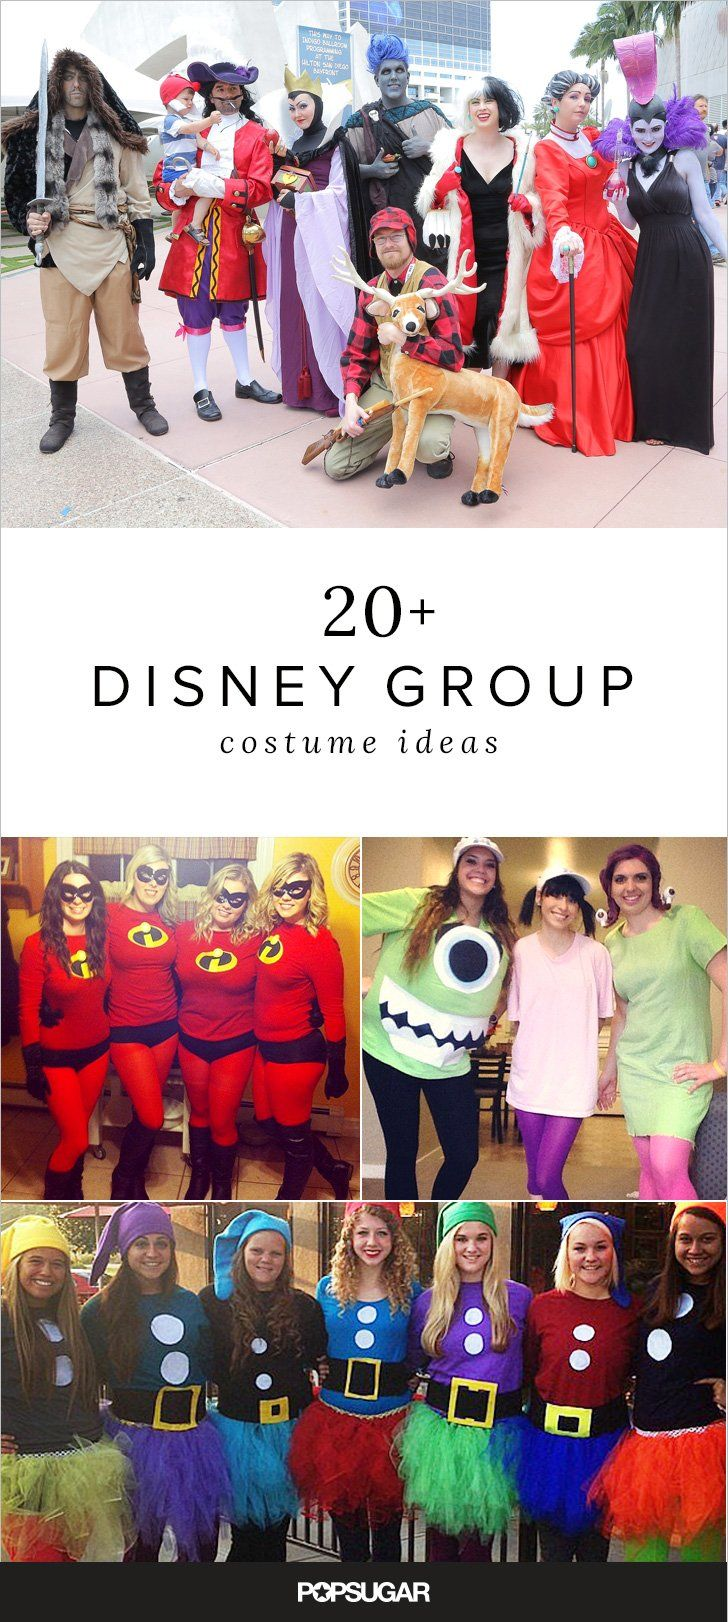 22 Group Disney Costume Ideas For Your Squad